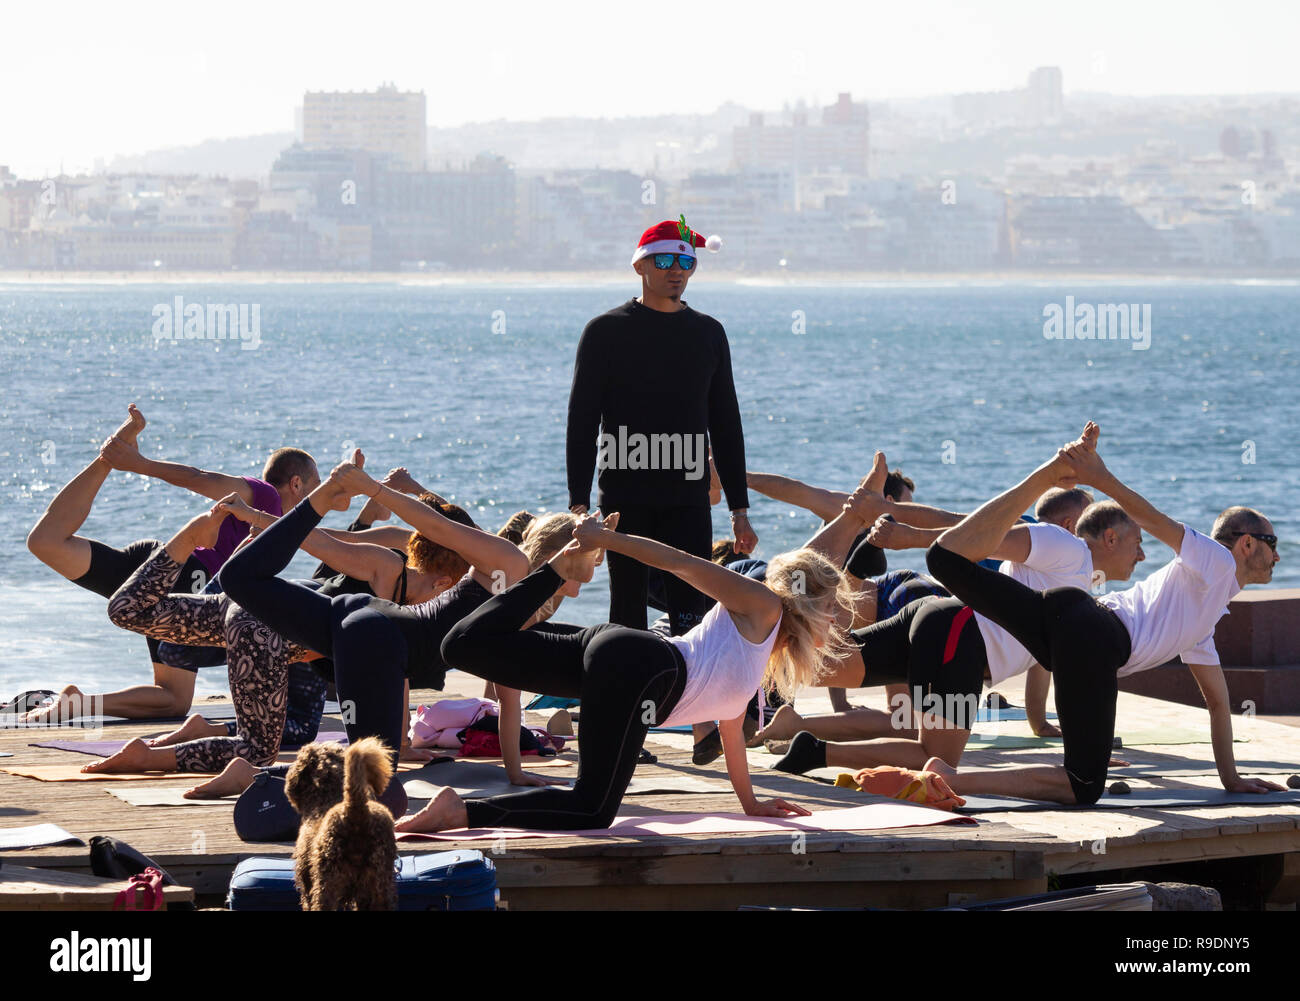 Las Palmas, Gran Canaria, Canary Islands, Spain. 22nd Dec, 2018. Weather: Pre Christmas Yoga session on the beach in Las Palmas on Gran Canaria on a glorious Saturday in the Canary Islands; where thousands of holidaymakers from the UK will be heading for some winter sun over Christmas. Credit: ALAN DAWSON/Alamy Live News Stock Photo